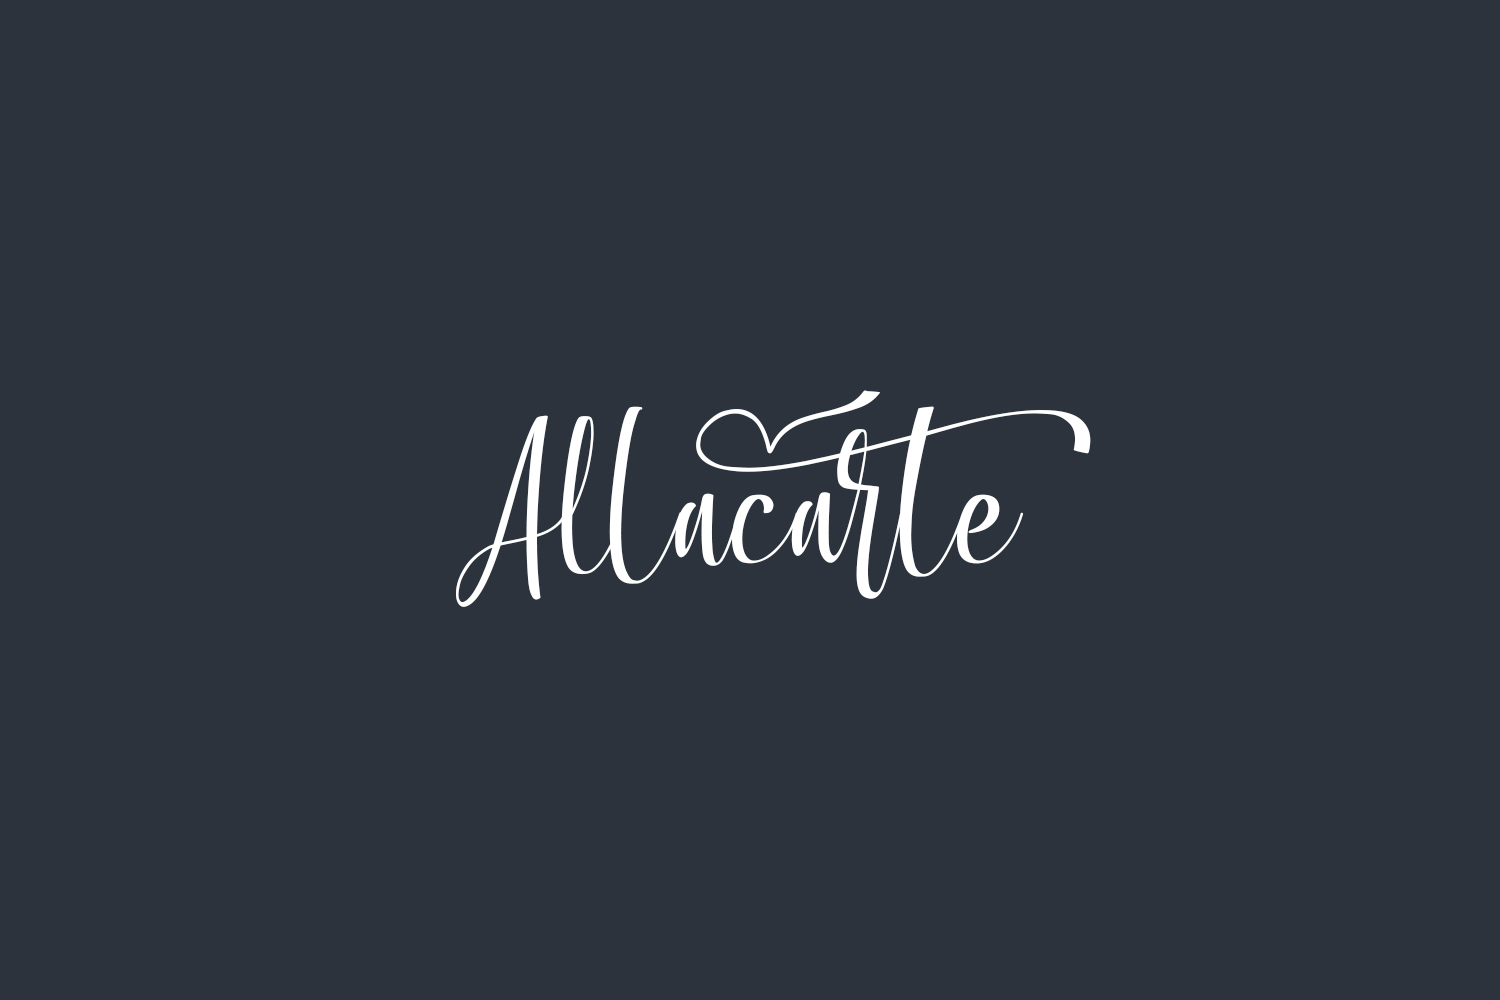 Allacarte Free Font